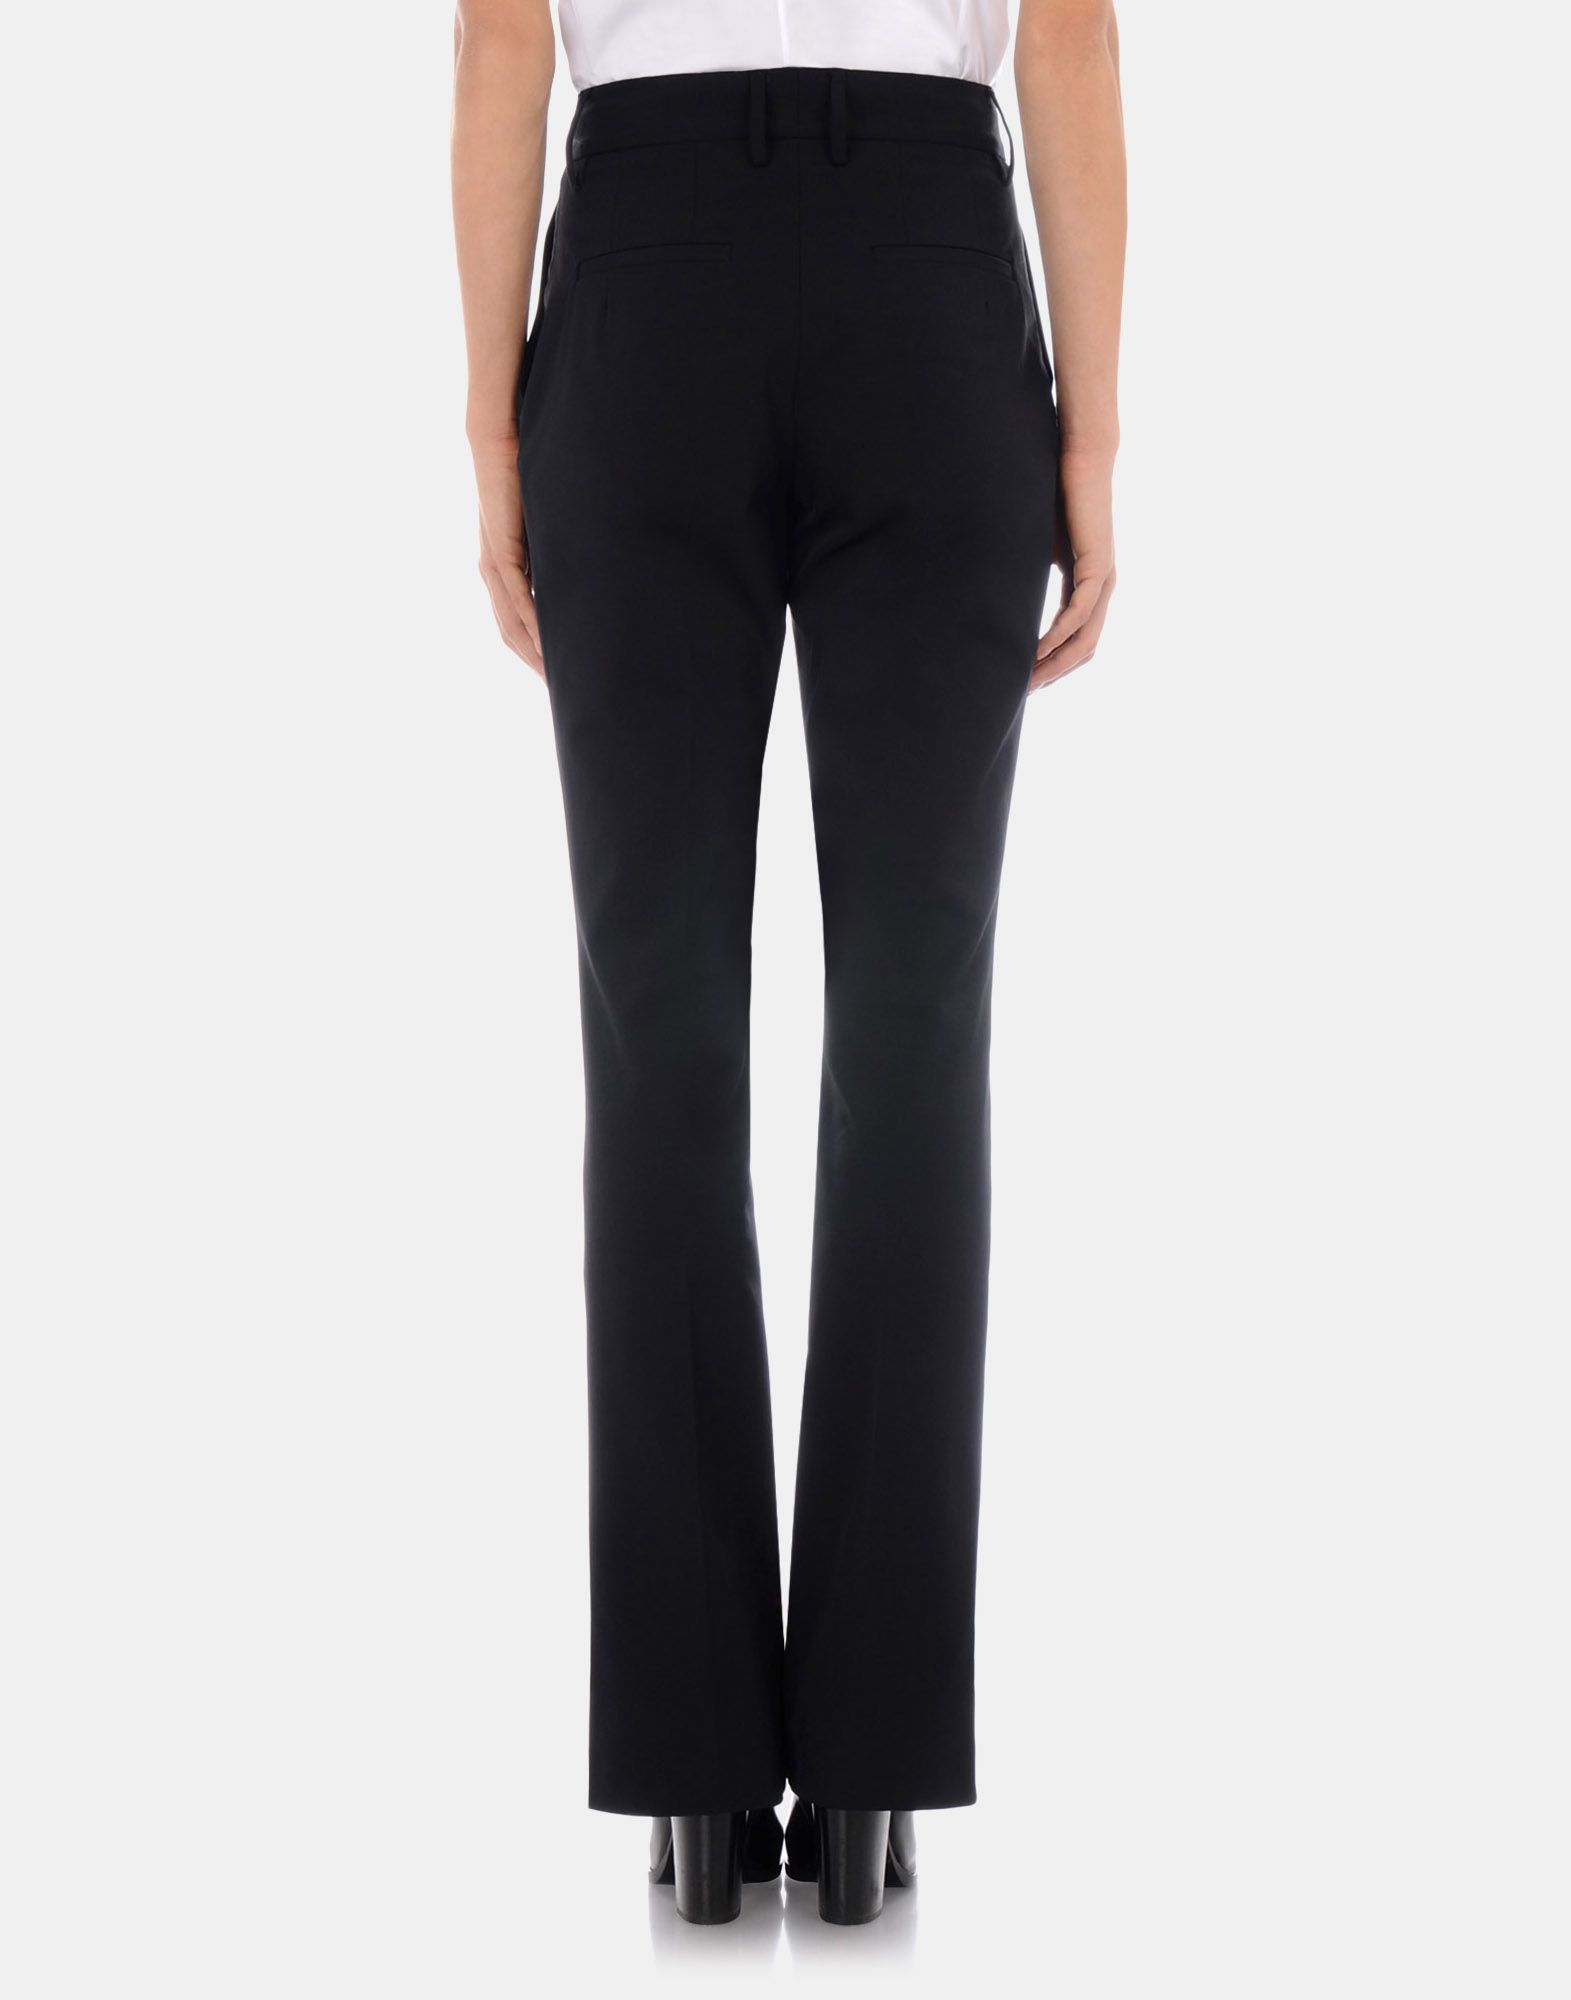 Luxury Givenchy Womens Straight Leg Tailored Pants In Black  Lyst